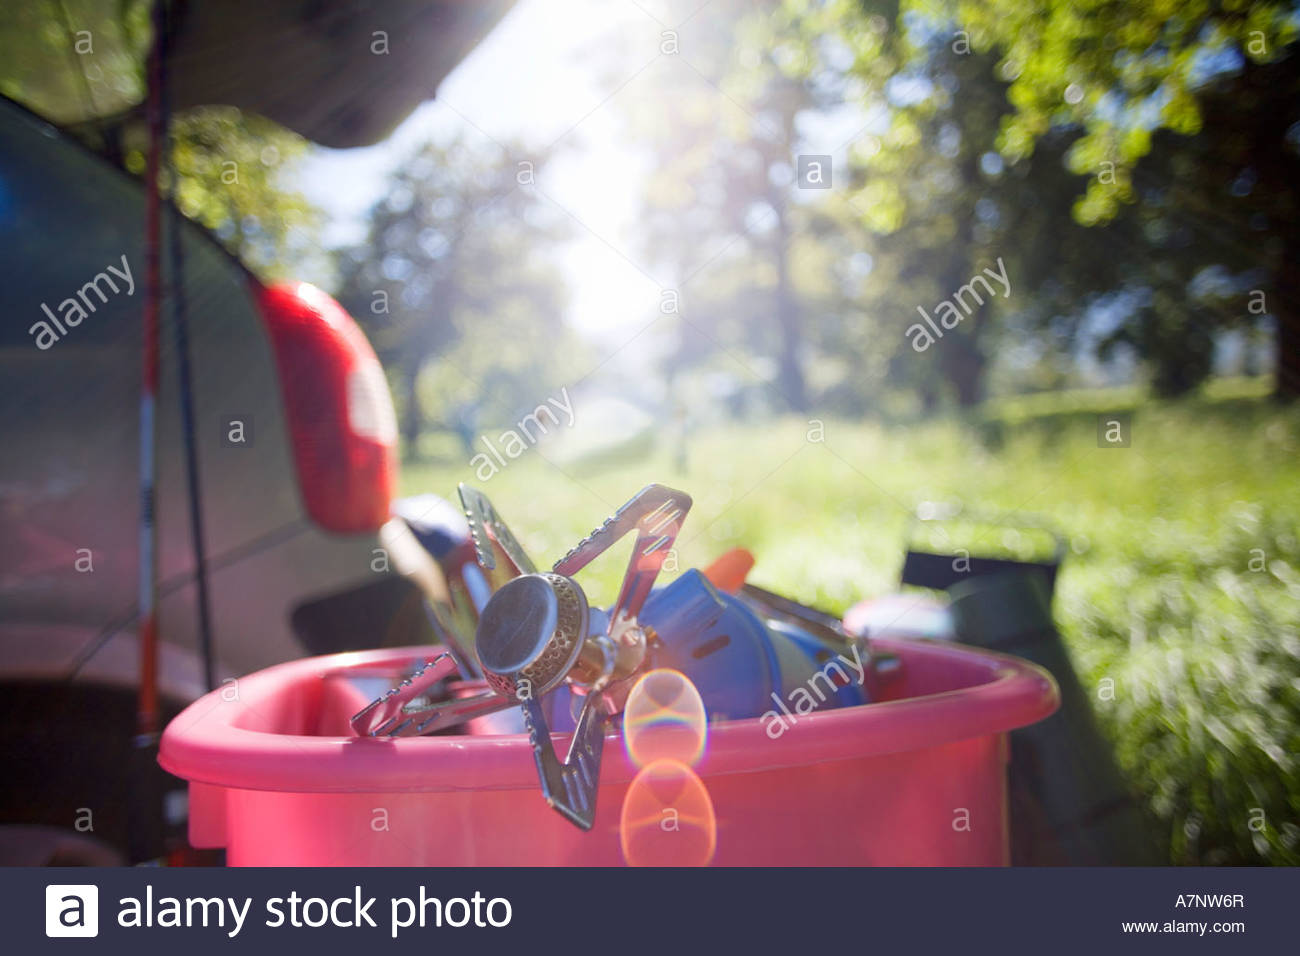 Parked car in woodland clearing focus on camping stove in pink container backlit Stock Photo